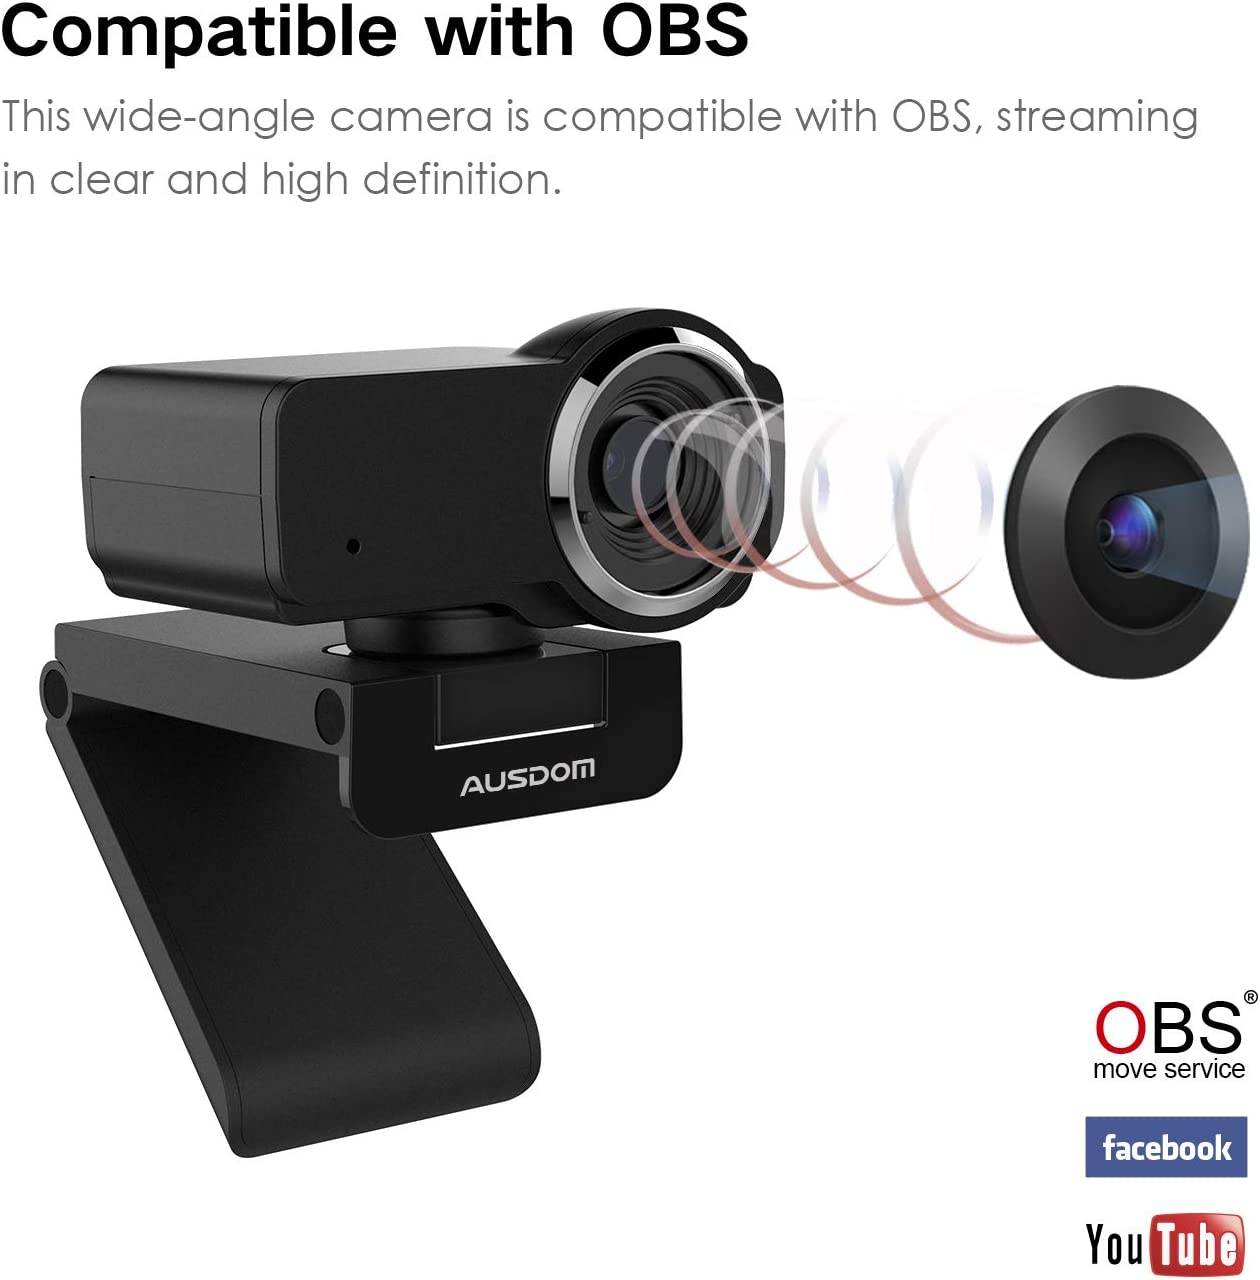 Compatible with Windows 7//8 Full HD Webcam 1080P with Microphone AUSDOM Wide Angle USB PC Cam for Video Chat//Recording on YouTube//Skype 10 //XP//Chrome//Mac OS